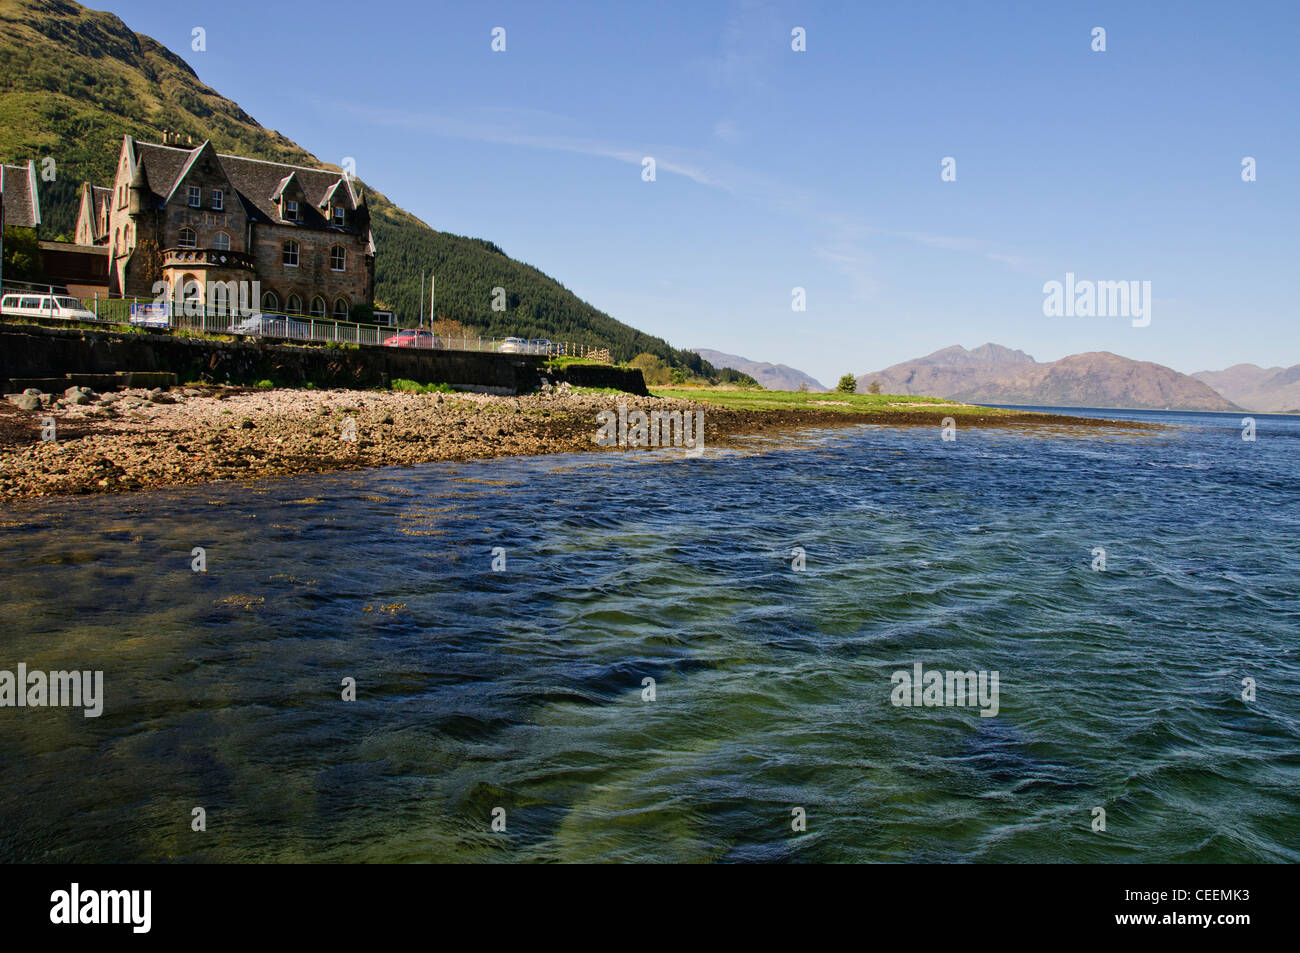 Ballachulish Bridge,Hotel,Loch Glencoe, Highlands,Scotland - Stock Image